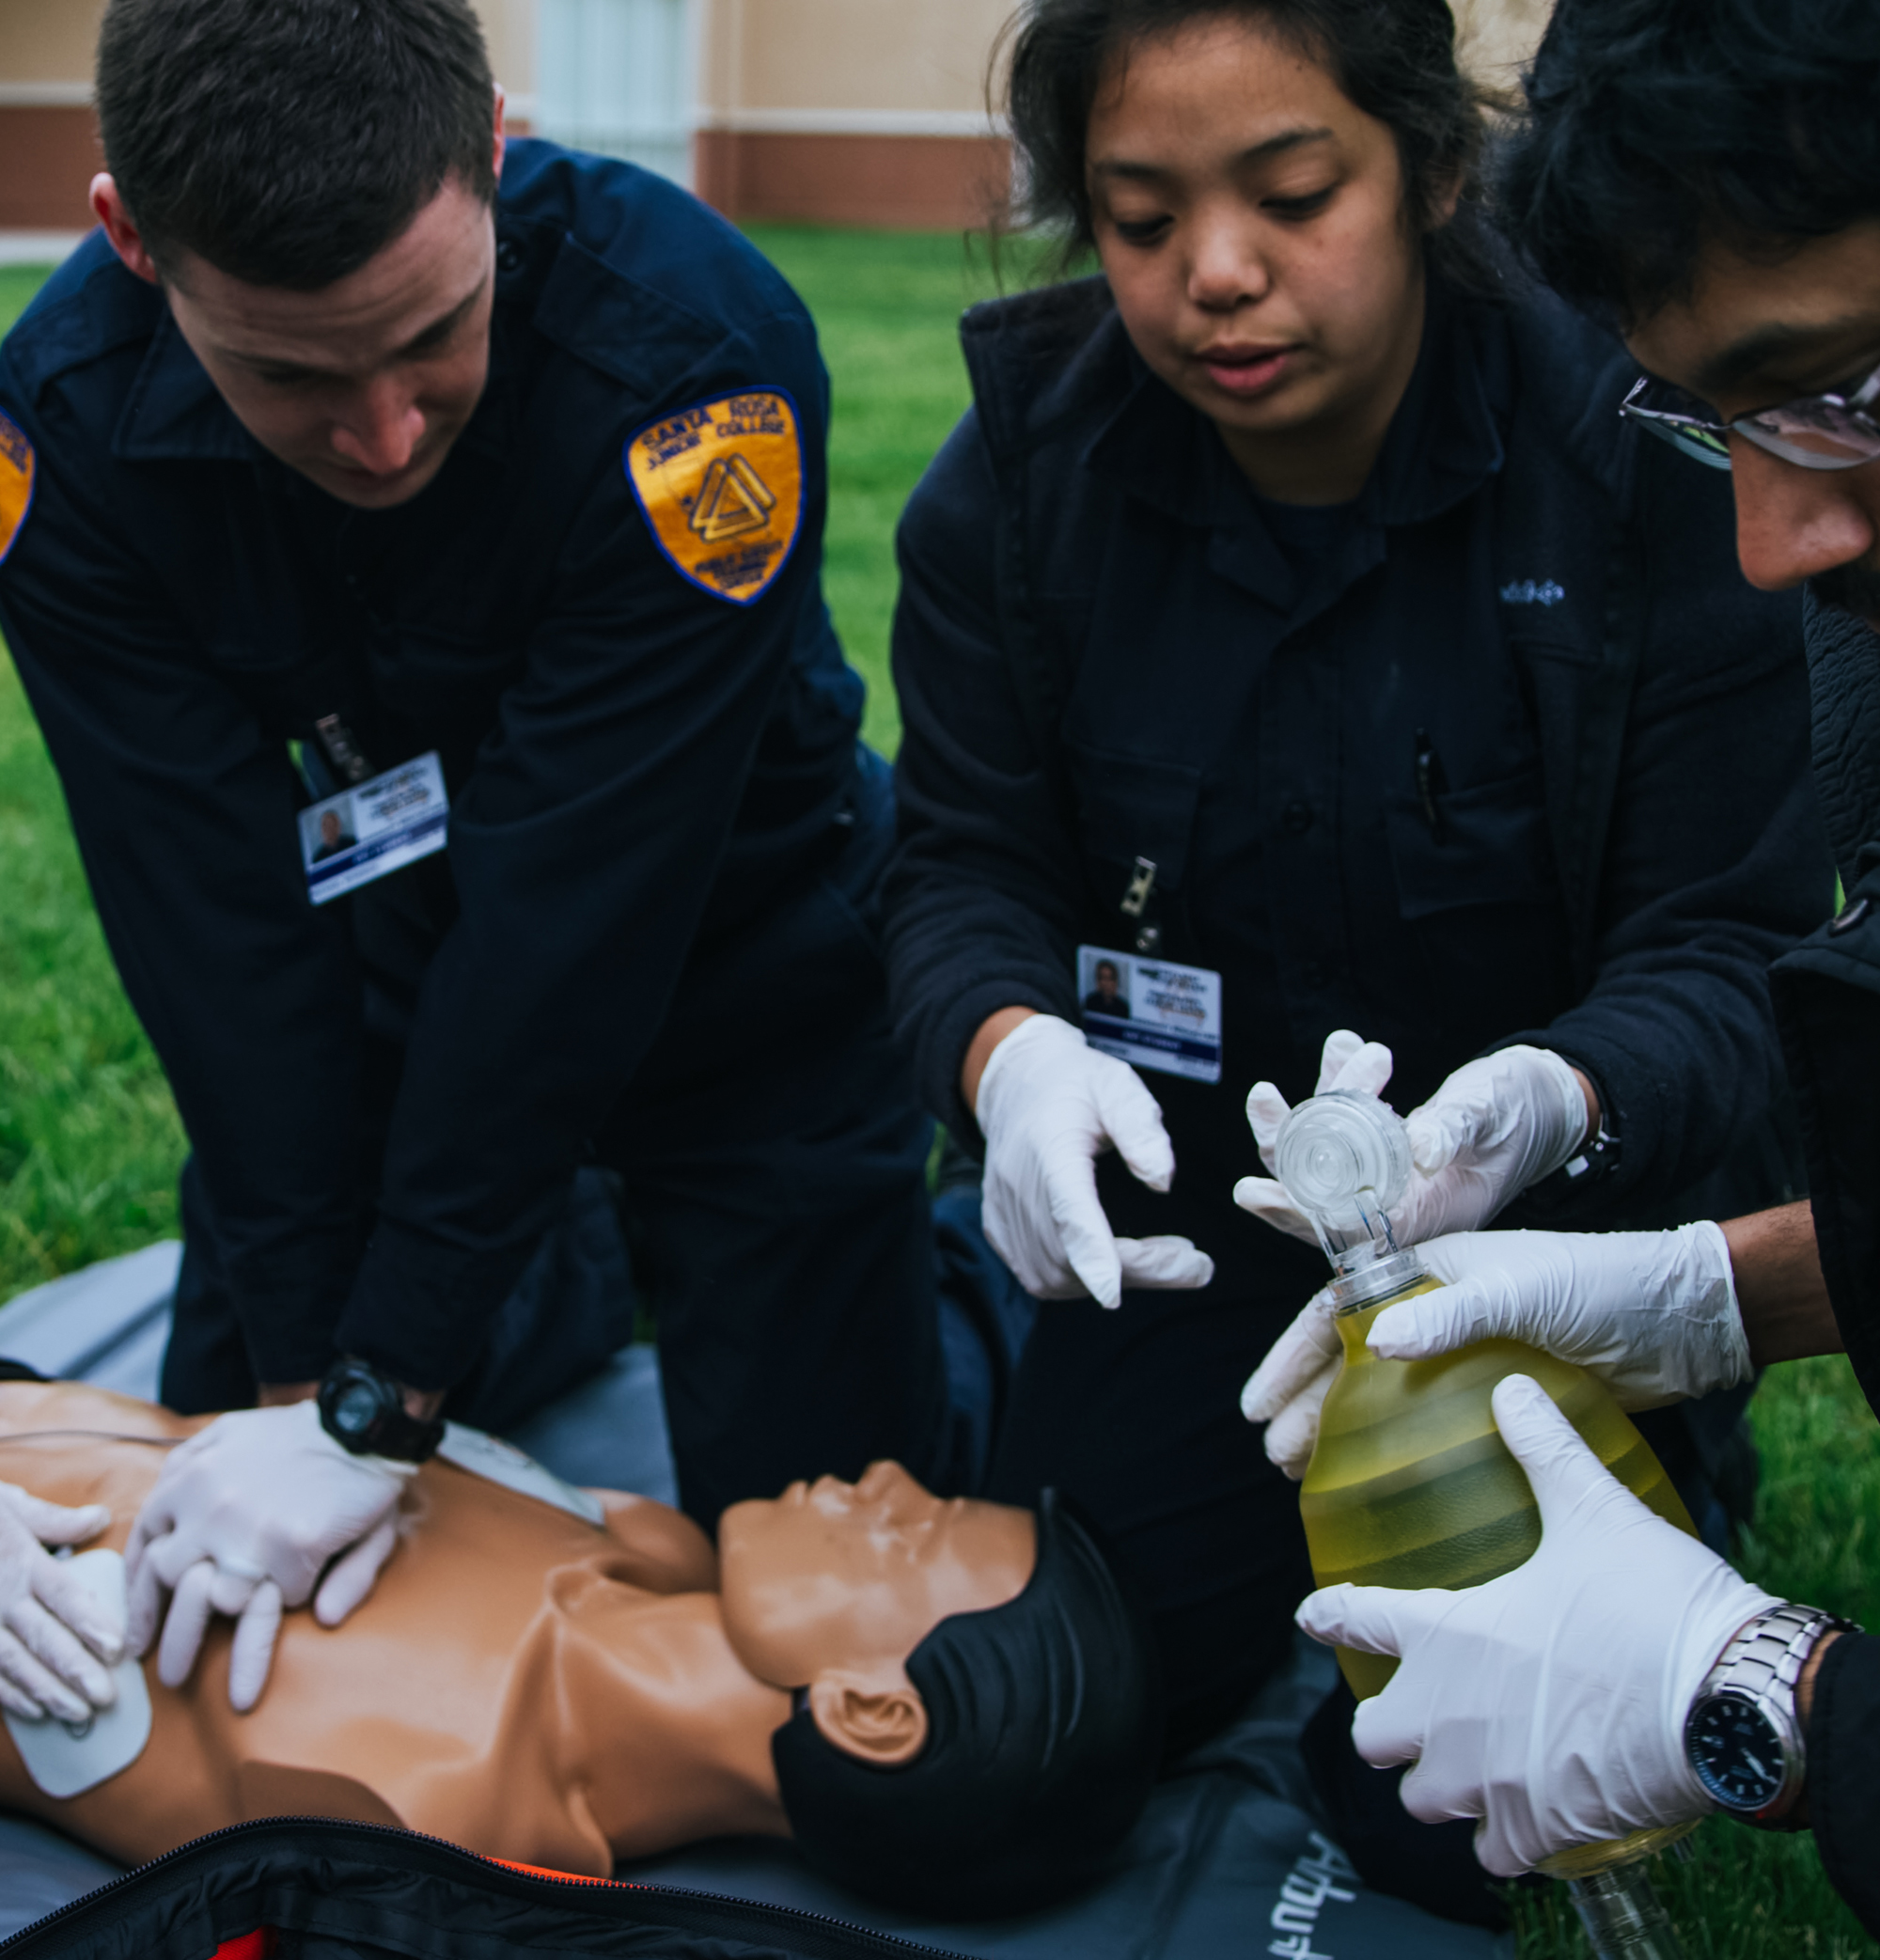 The Best Training the Best - Our Public Safety programs are directed and taught by active paramedics, firefighters, law enforcement officers, rangers and correctional officers—many with decades of experience on the job, and several who graduated from the academies they now instruct.